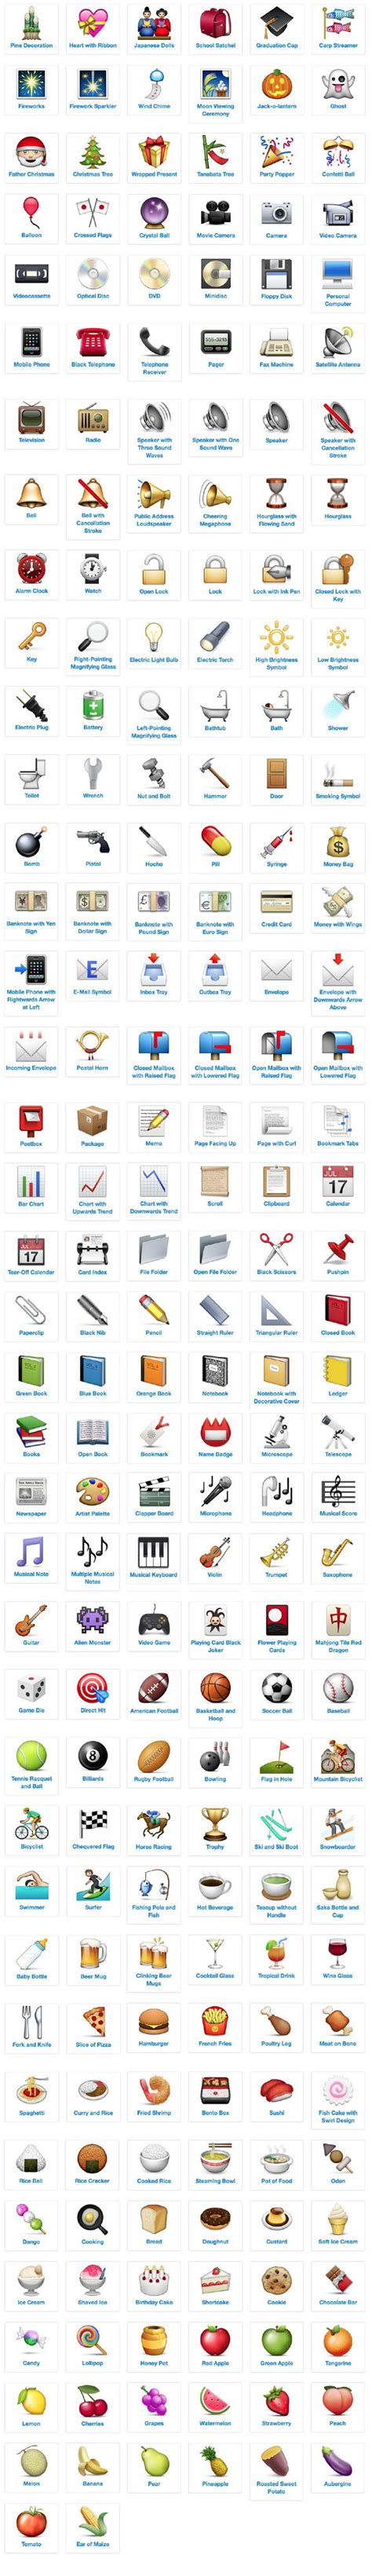 emoji list emoji icon list objects with meanings and definitions a